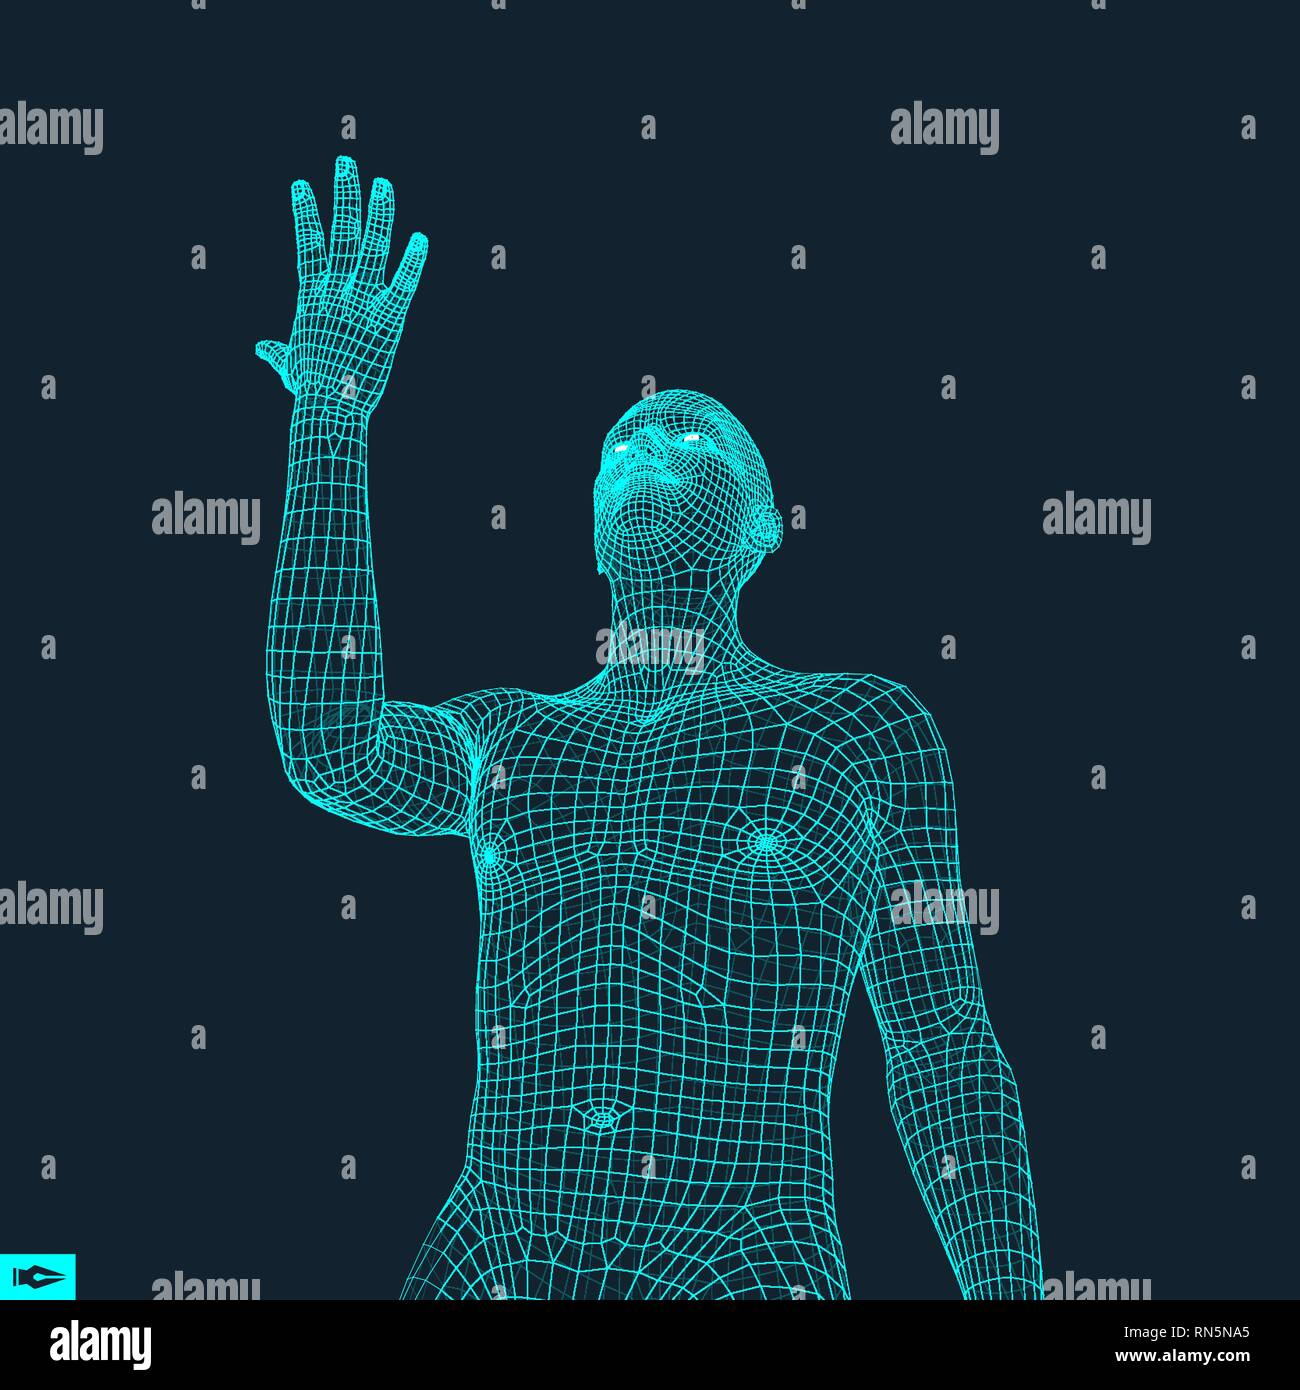 Man Points to Something by Hand. 3D Model of Man. Geometric Design. Vector Illustration. - Stock Vector